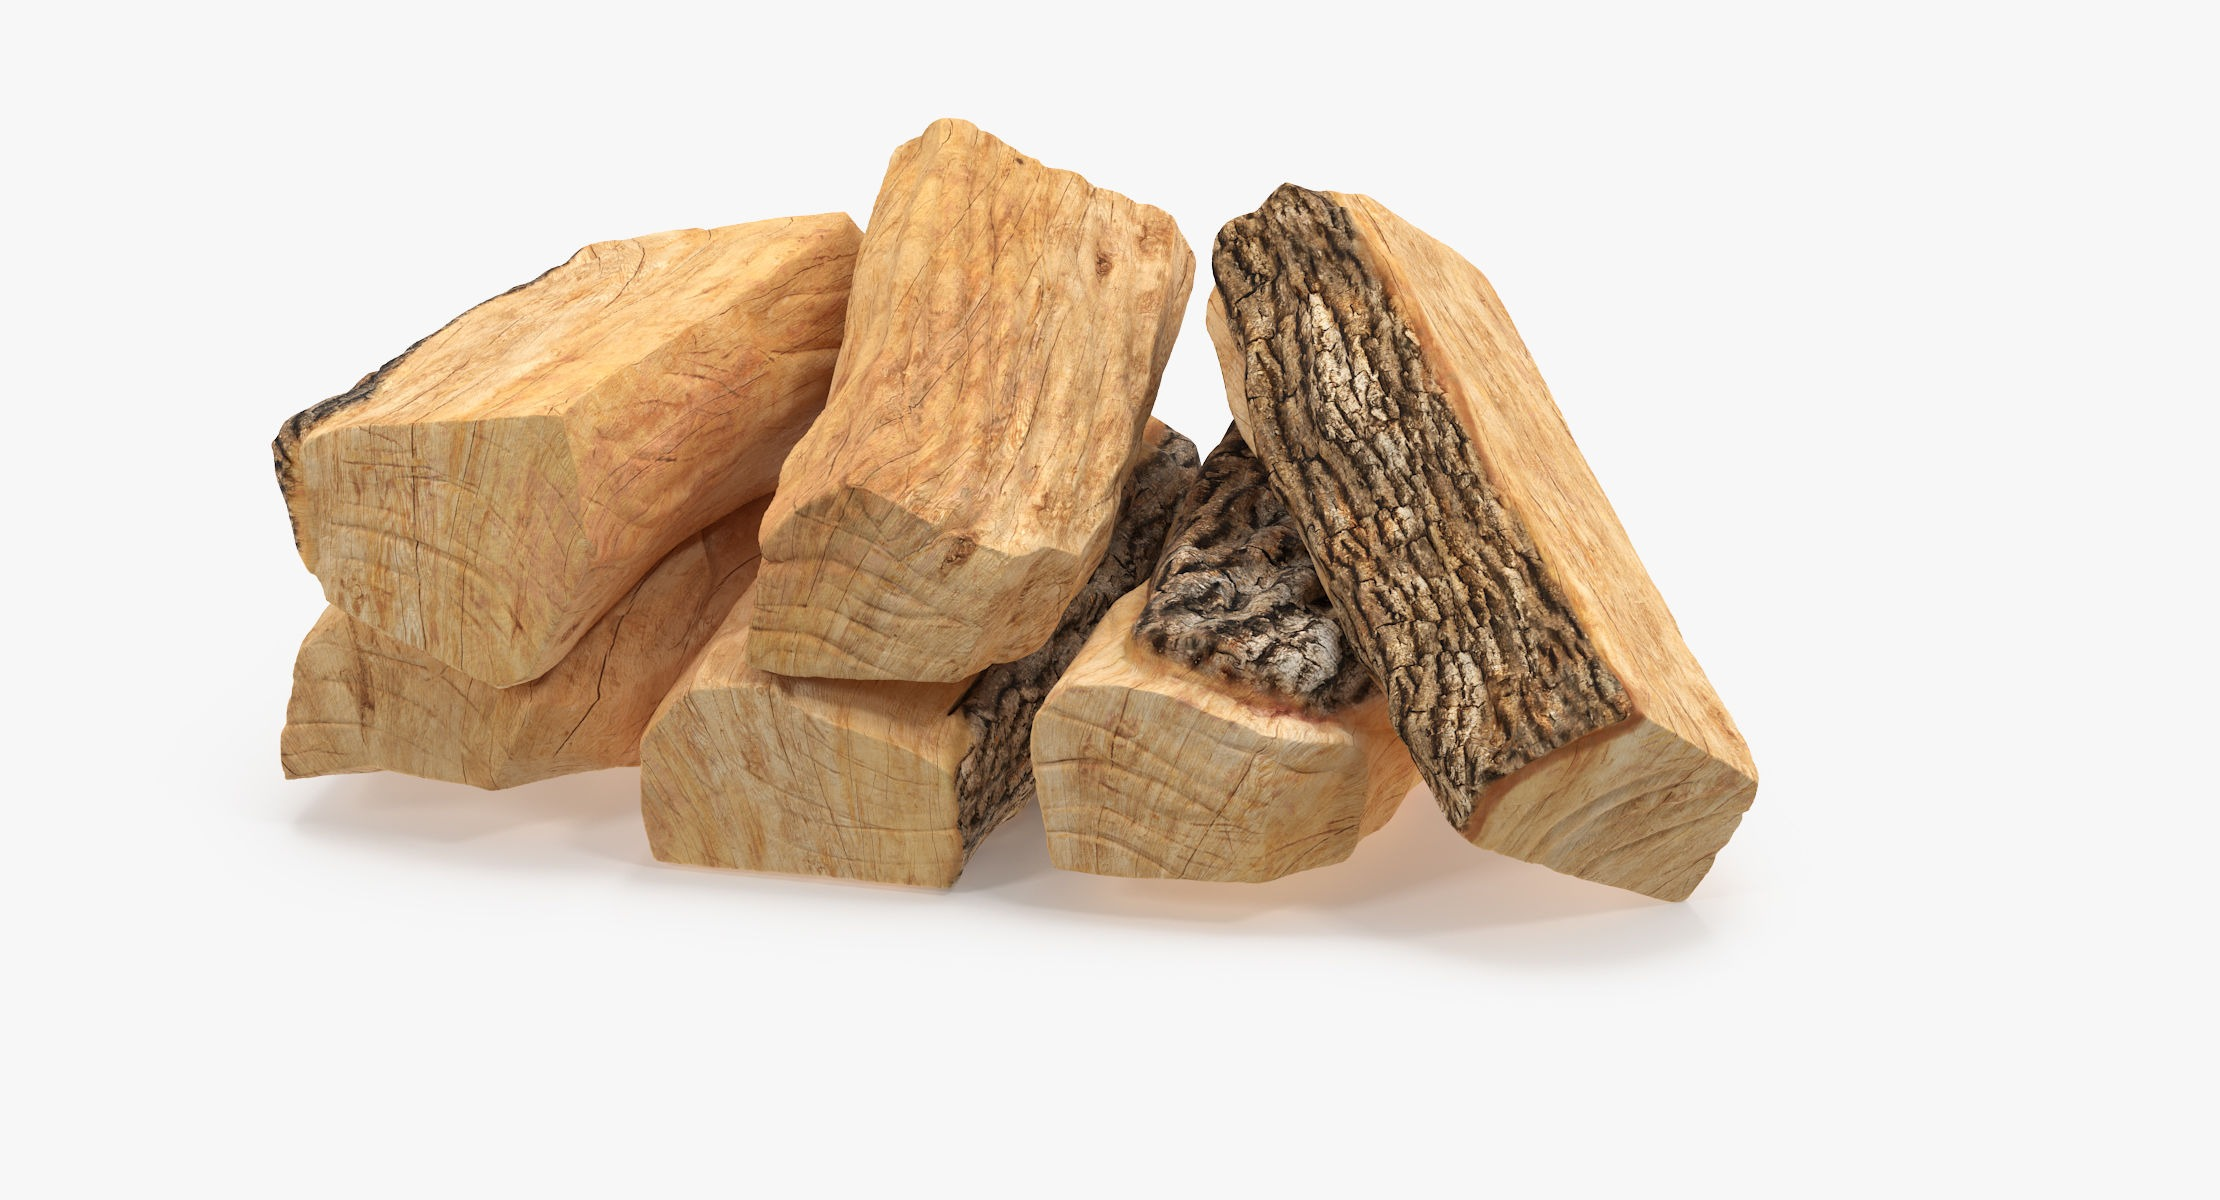 Firewood Small Stack 01 - reel 1